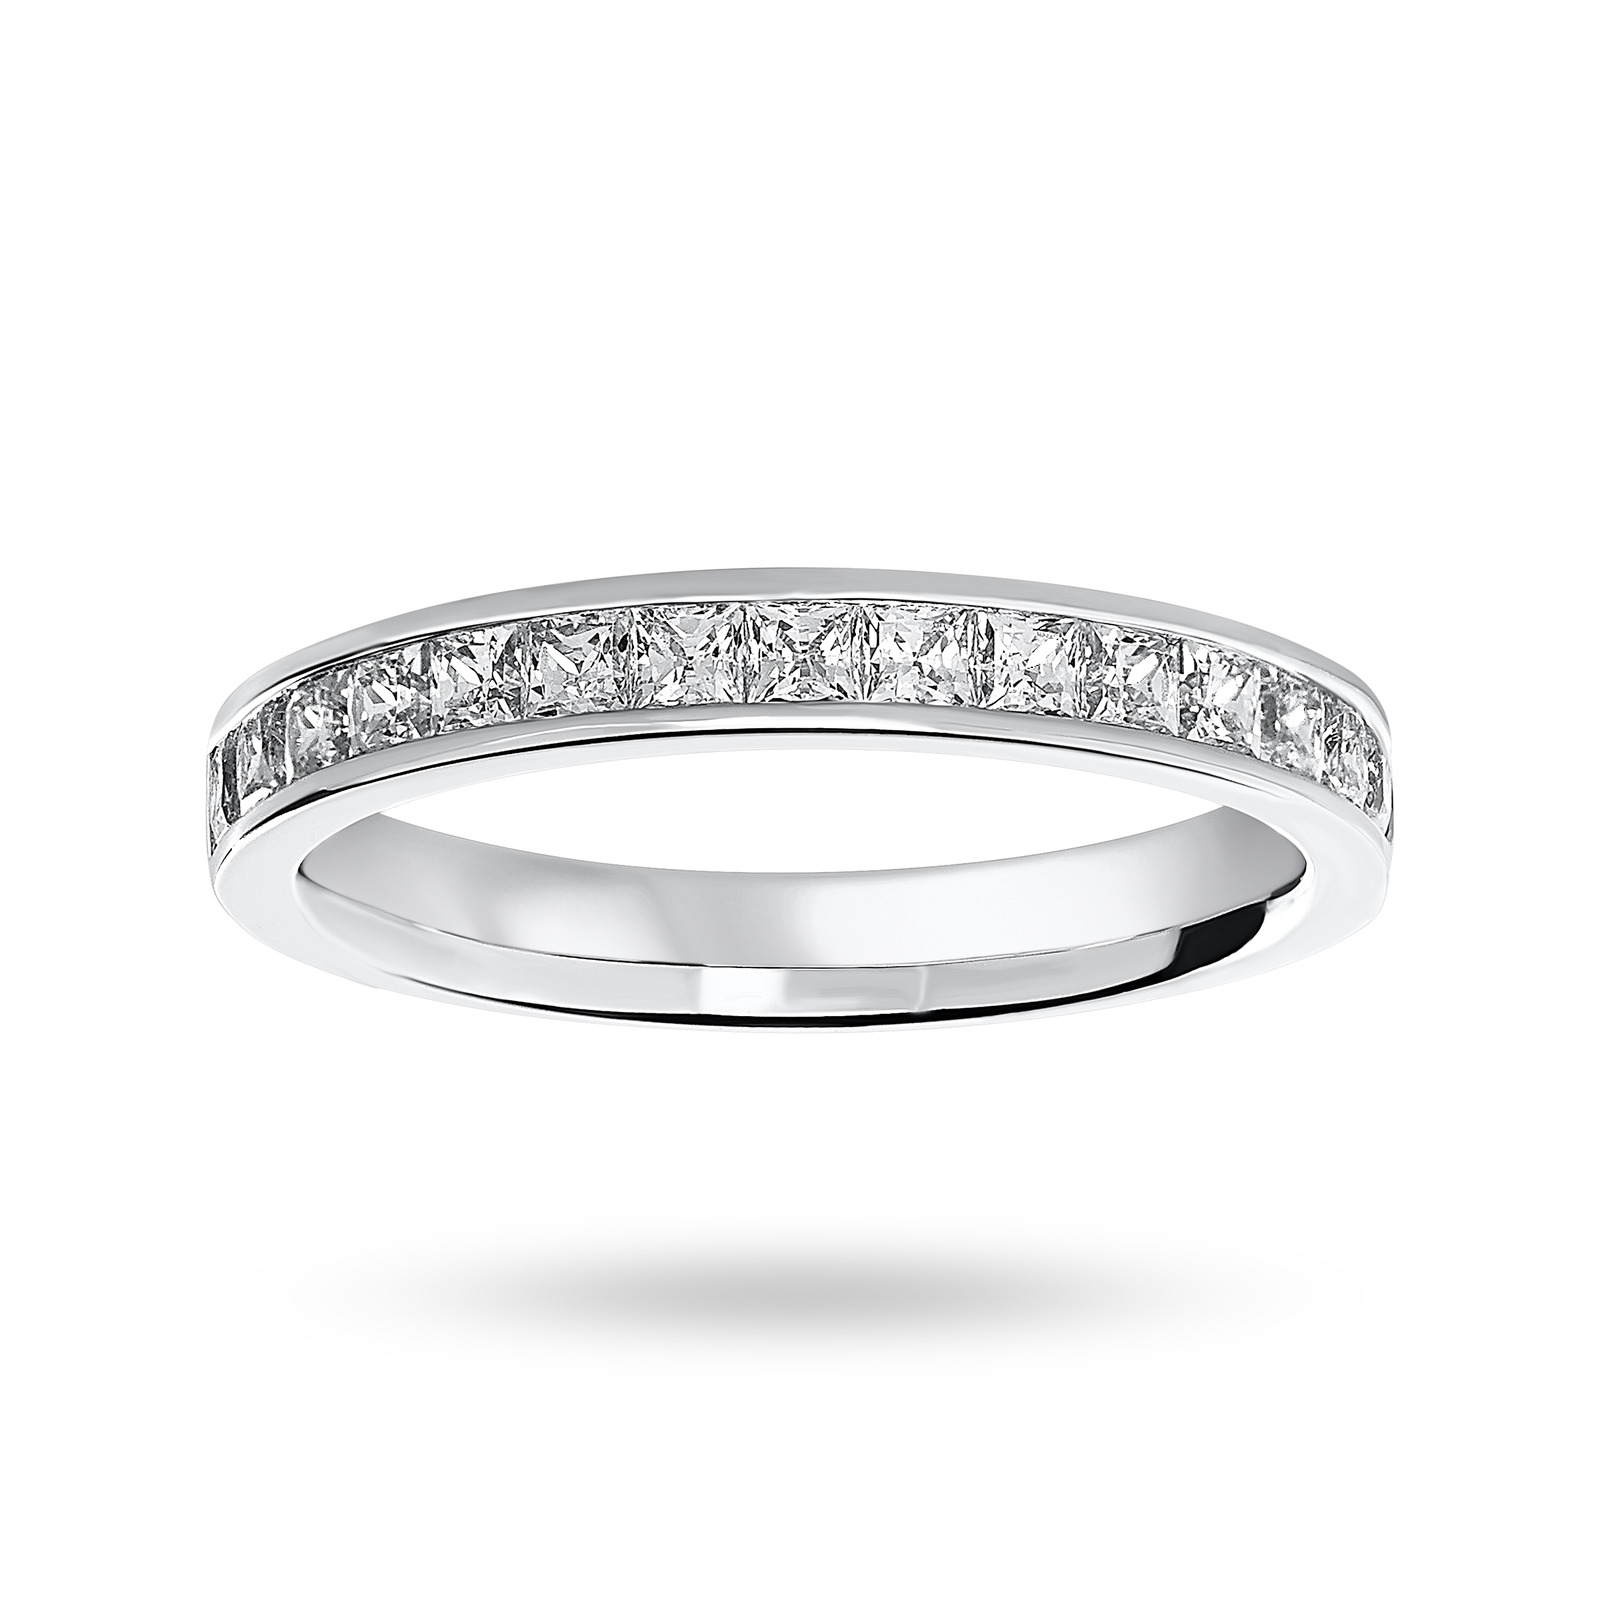 Platinum 0.75 Carat Princess Cut Half Eternity Ring